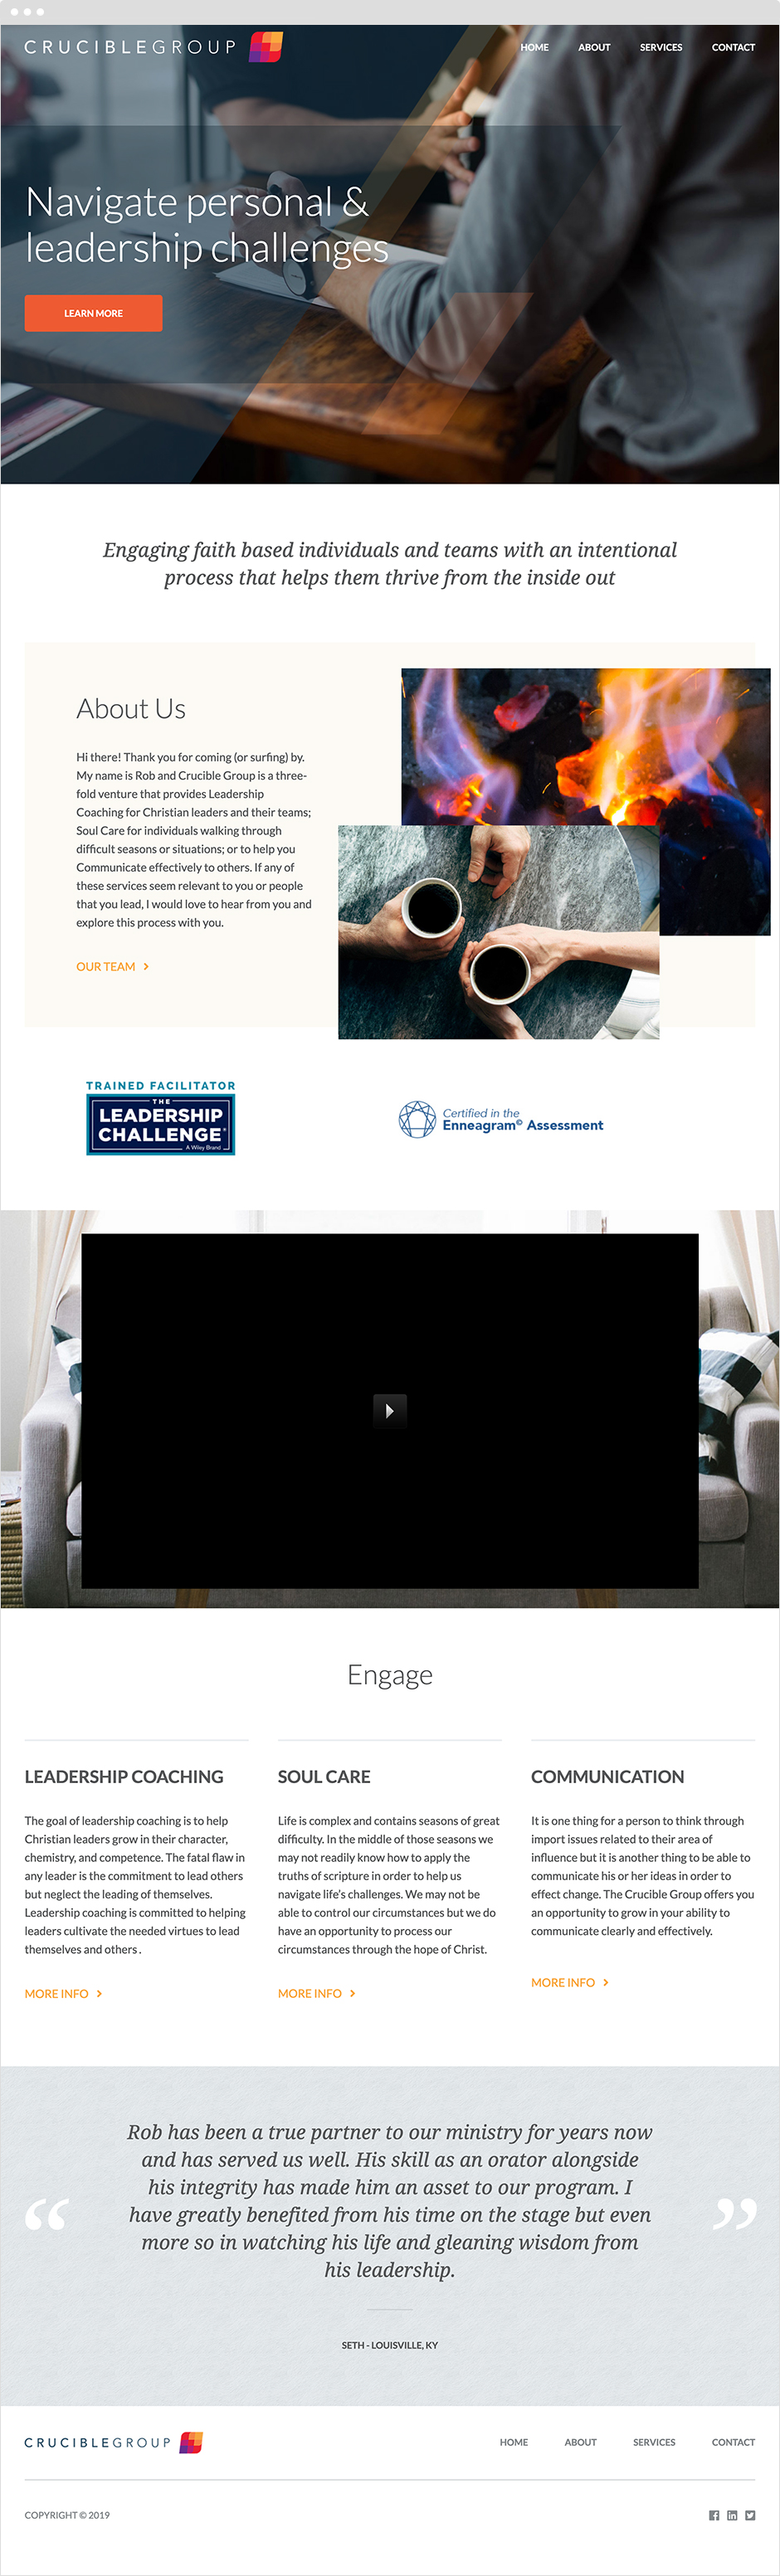 The Crucible Group Homepage Design